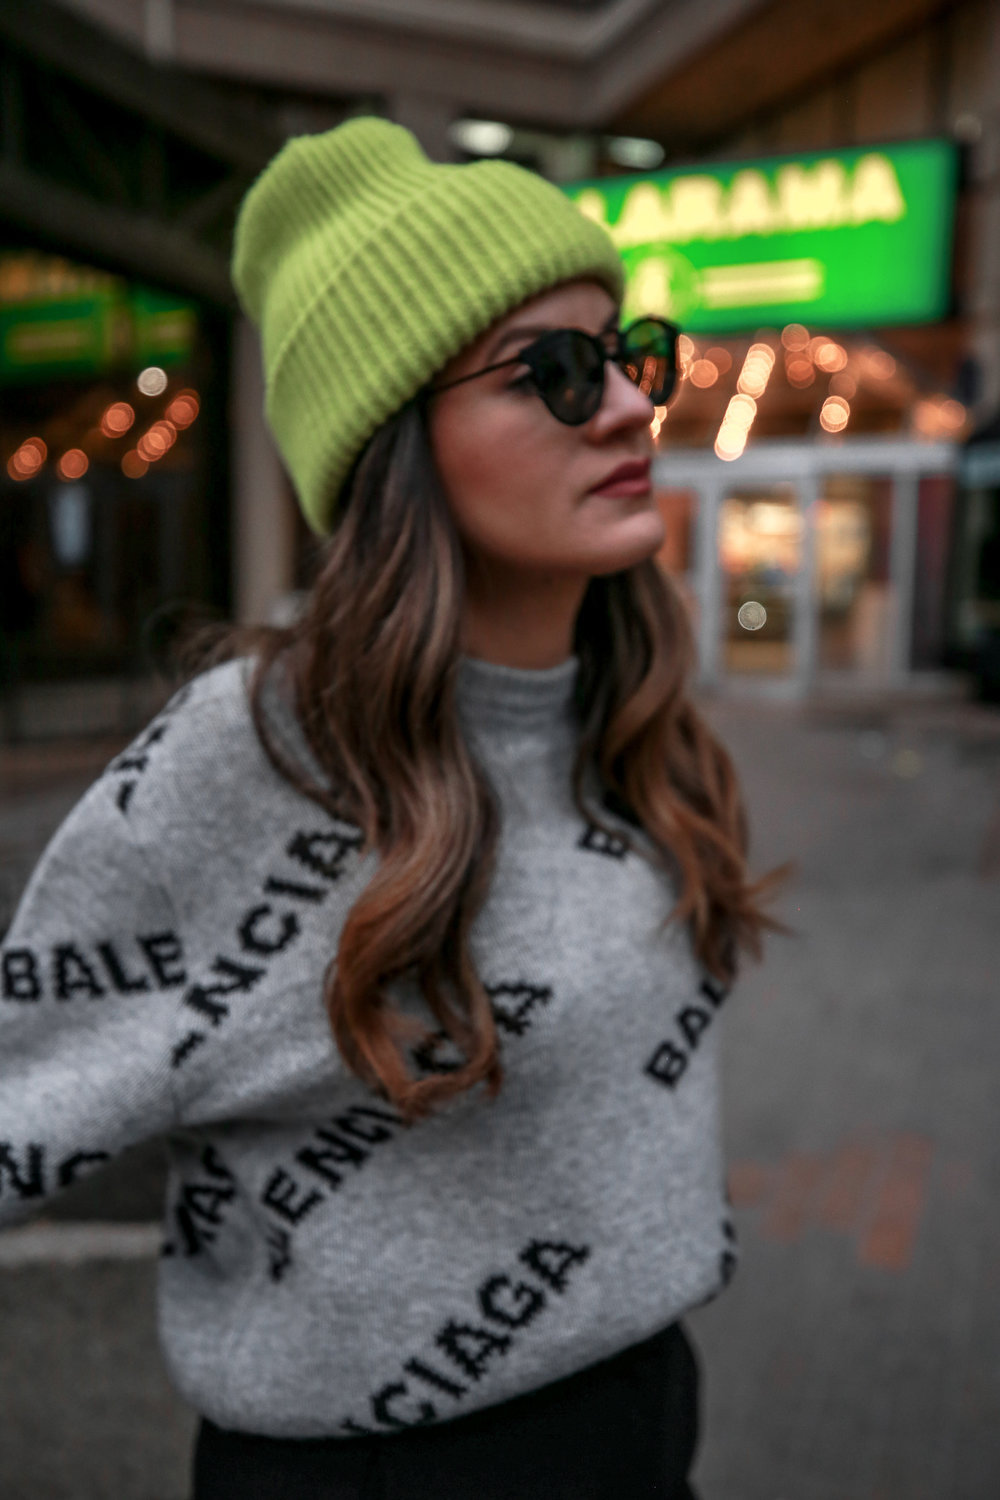 Nathalie Martin wearing Balenciaga cropped logo sweater, Aritzia black Jallade pant, Saint Laurent white canvas court sneakers, Aritzia navy pinstripe Stedman coat, neon green beanie, Bonlook Way sunglasses, street style, woahstyle.com_3935.jpg